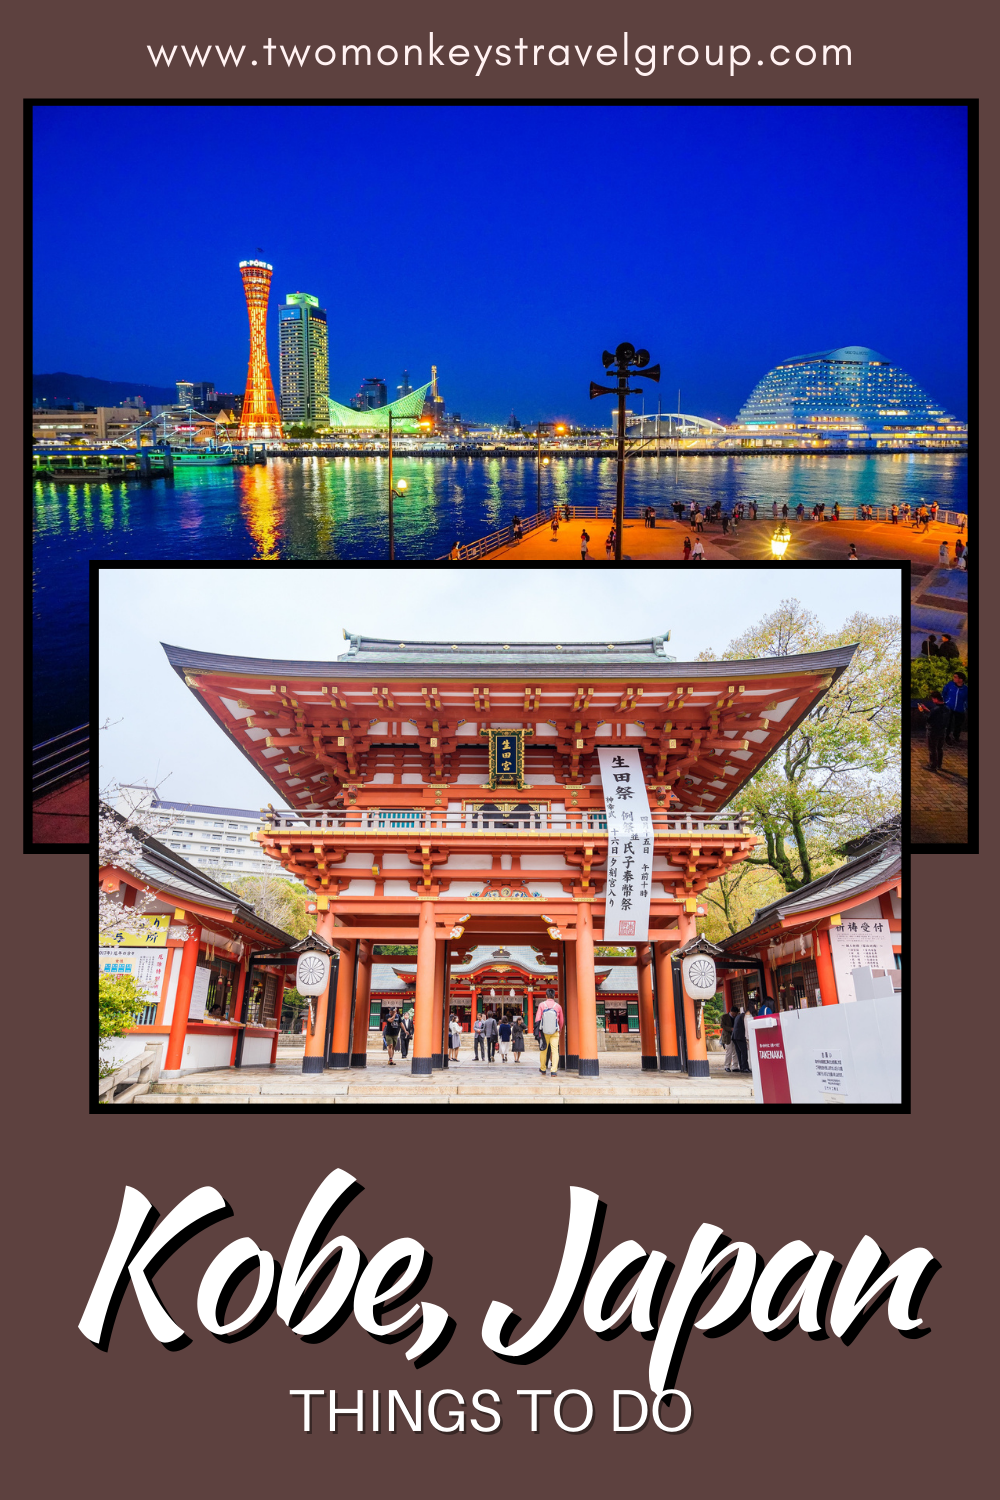 10 Things To Do in Kobe, Japan [with Suggested Tours]